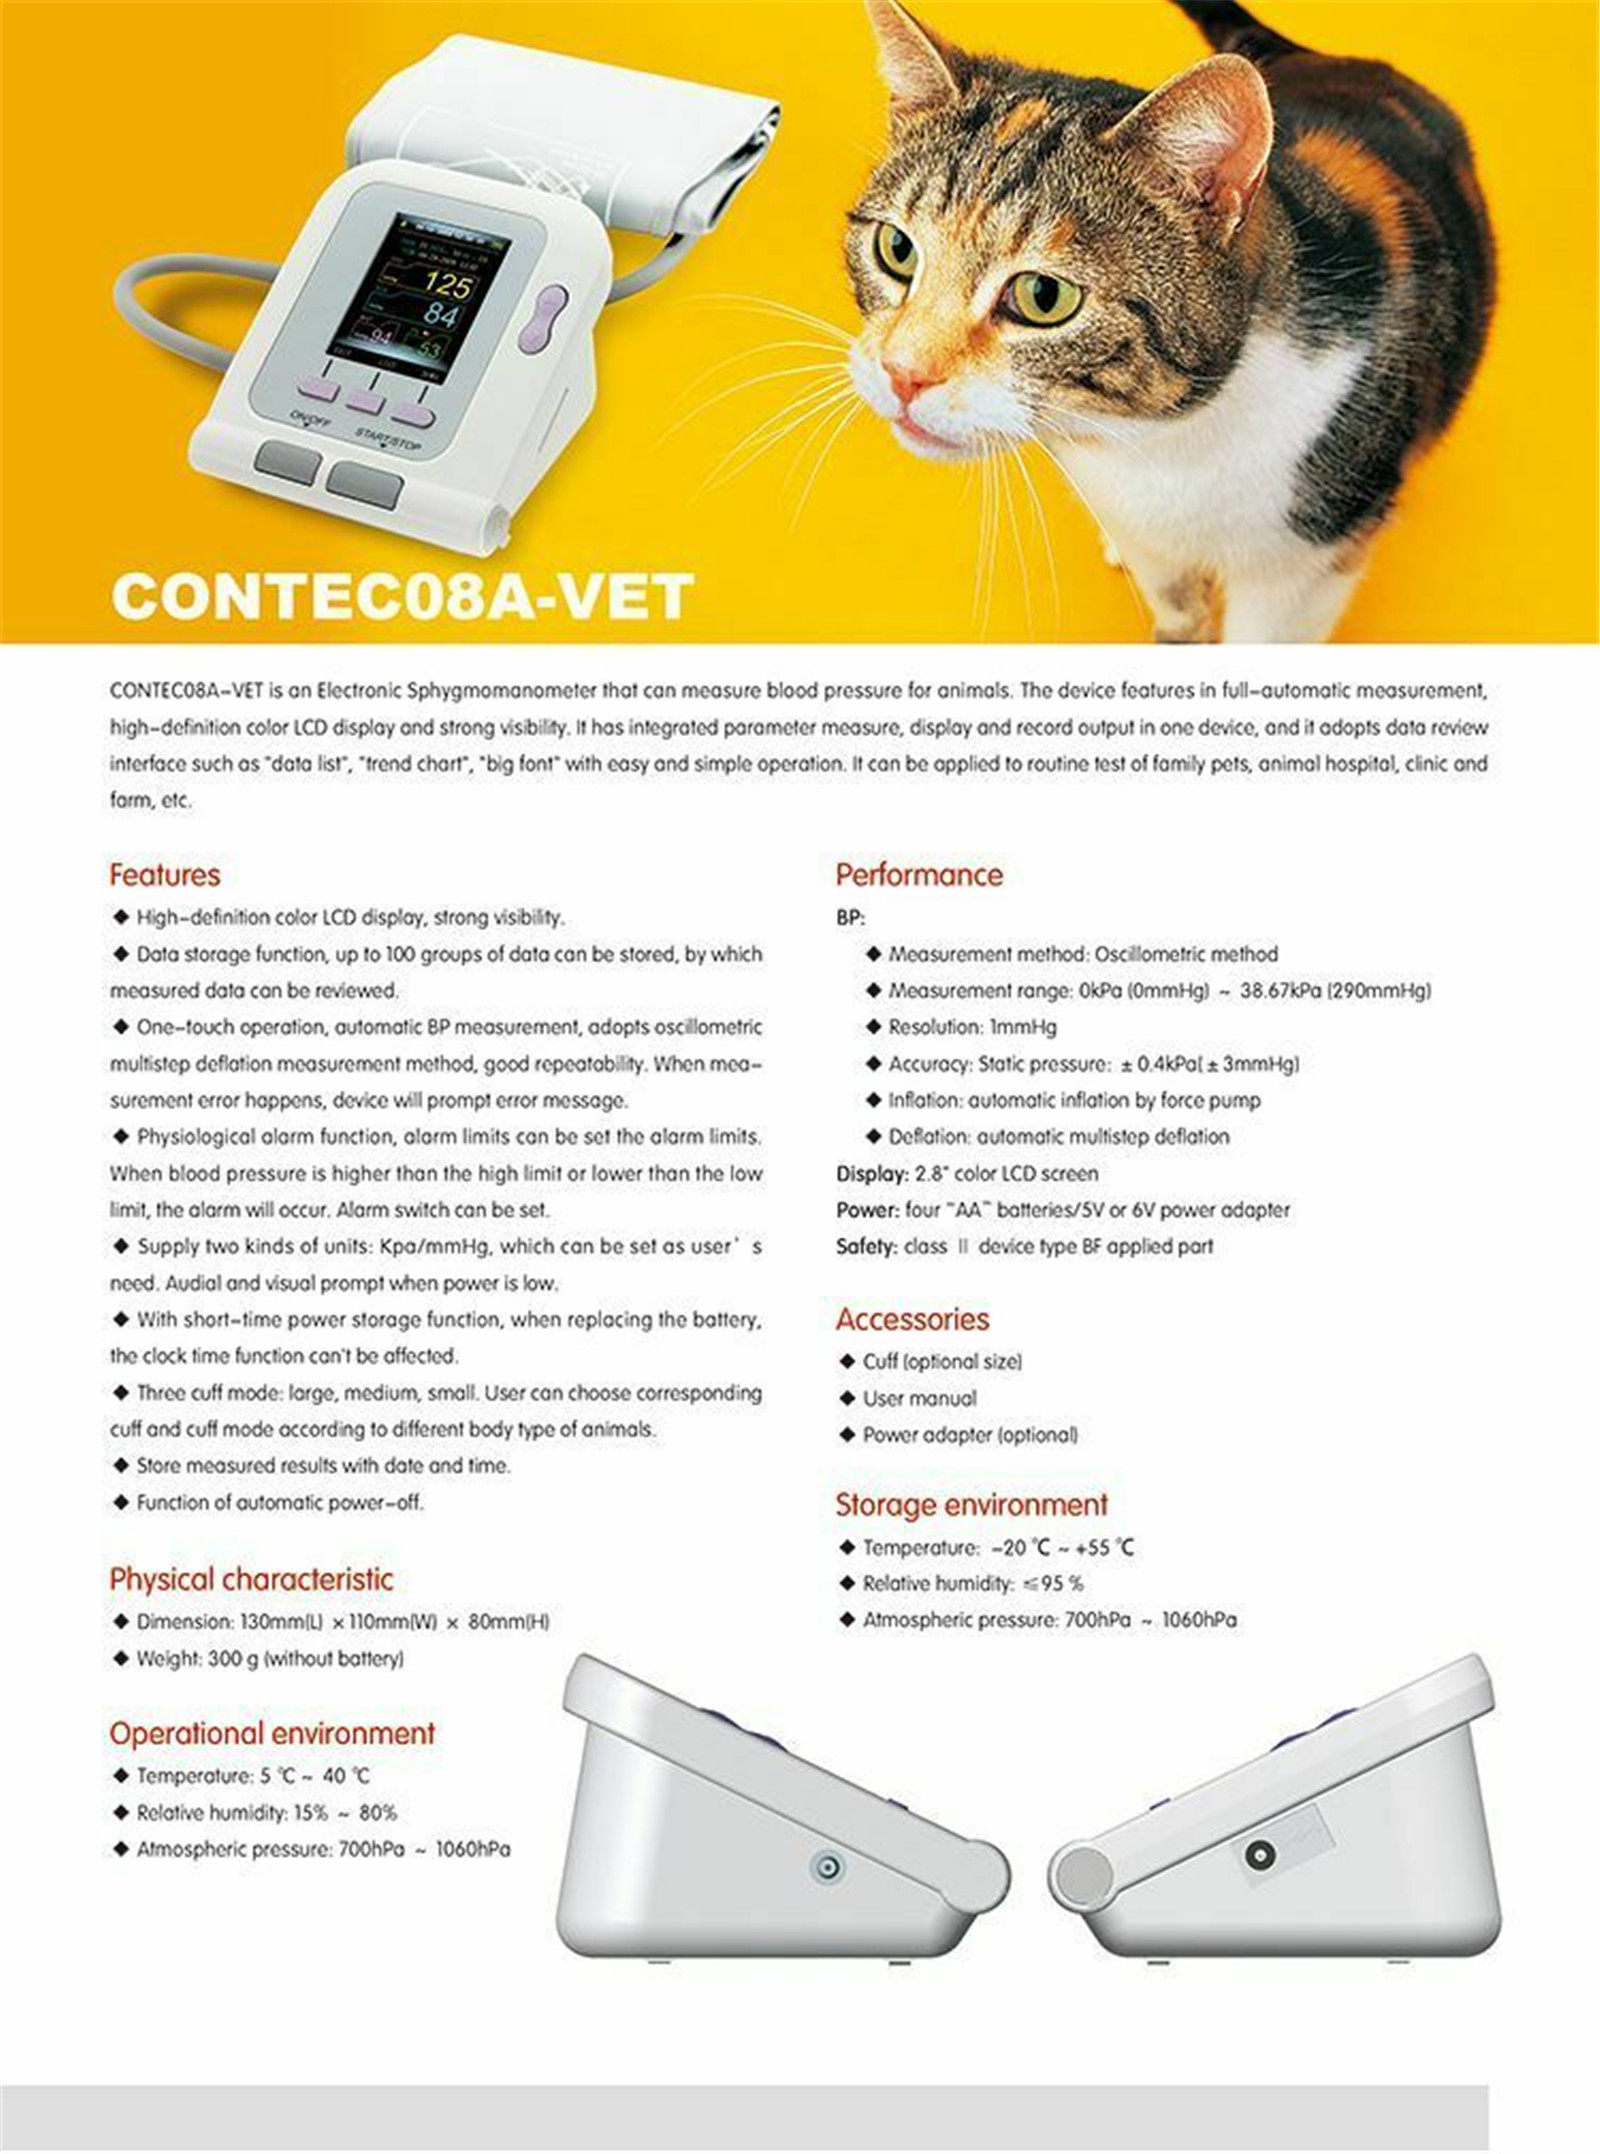 JYTOP Digital Veterinary Blood Pressure Monitor NIBP + SP02, PC Software, Dog/Cat 08A-PET